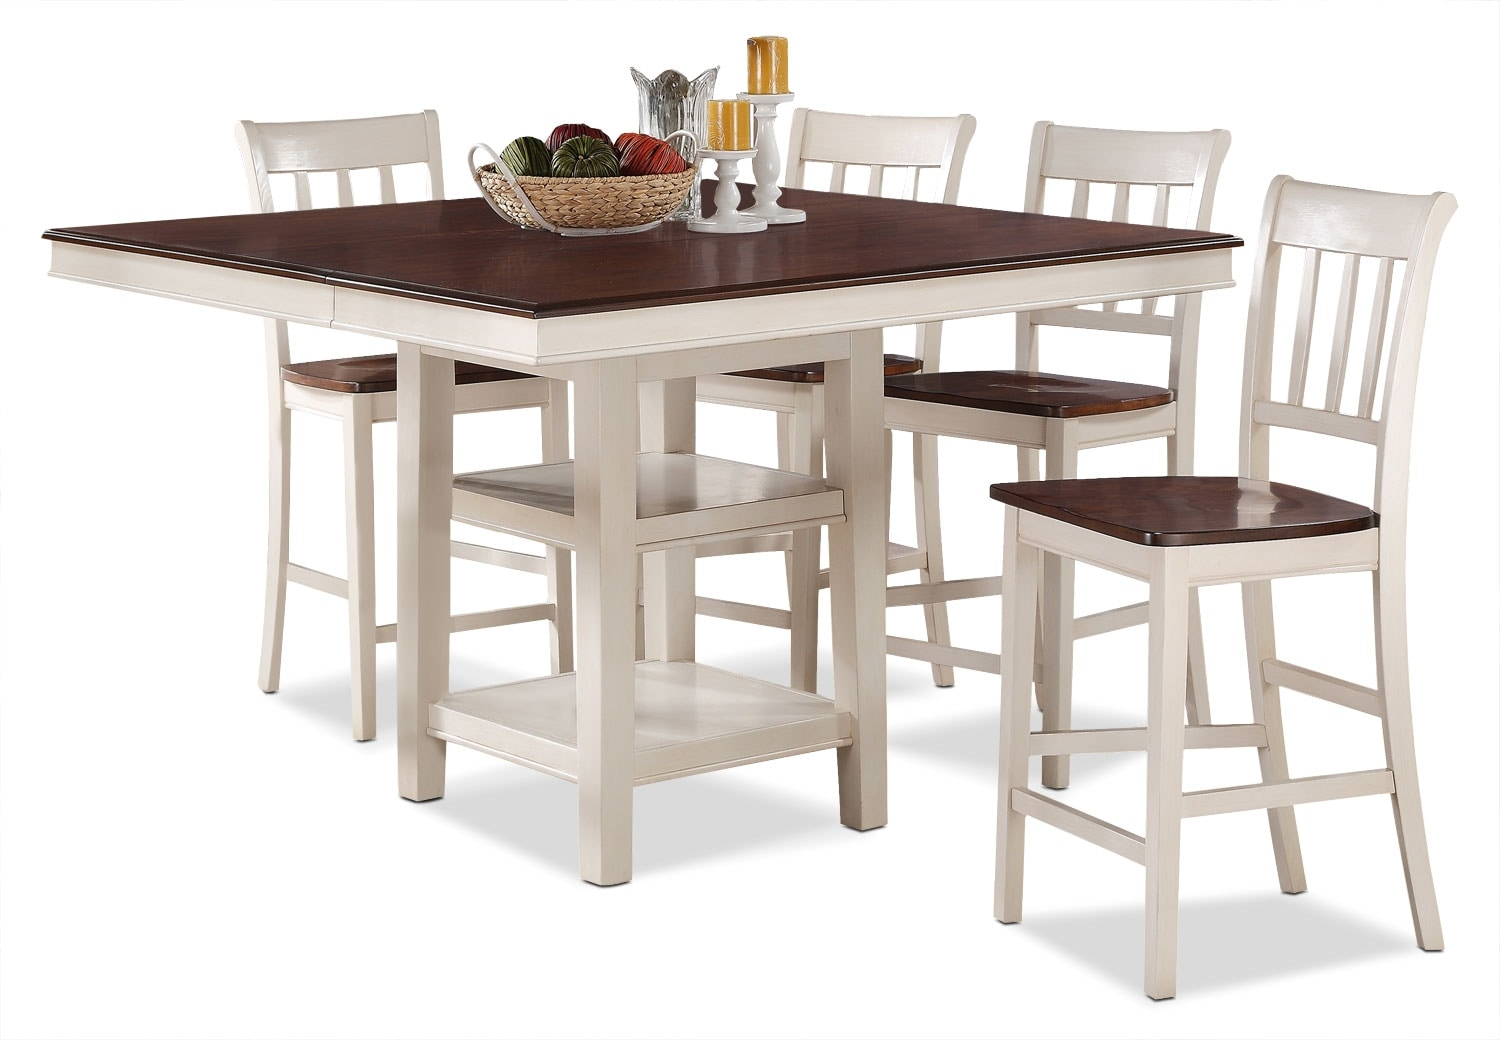 Dining Room Furniture - Nyla 5-Piece Counter-Height Dining Package – Antique White and Cherry